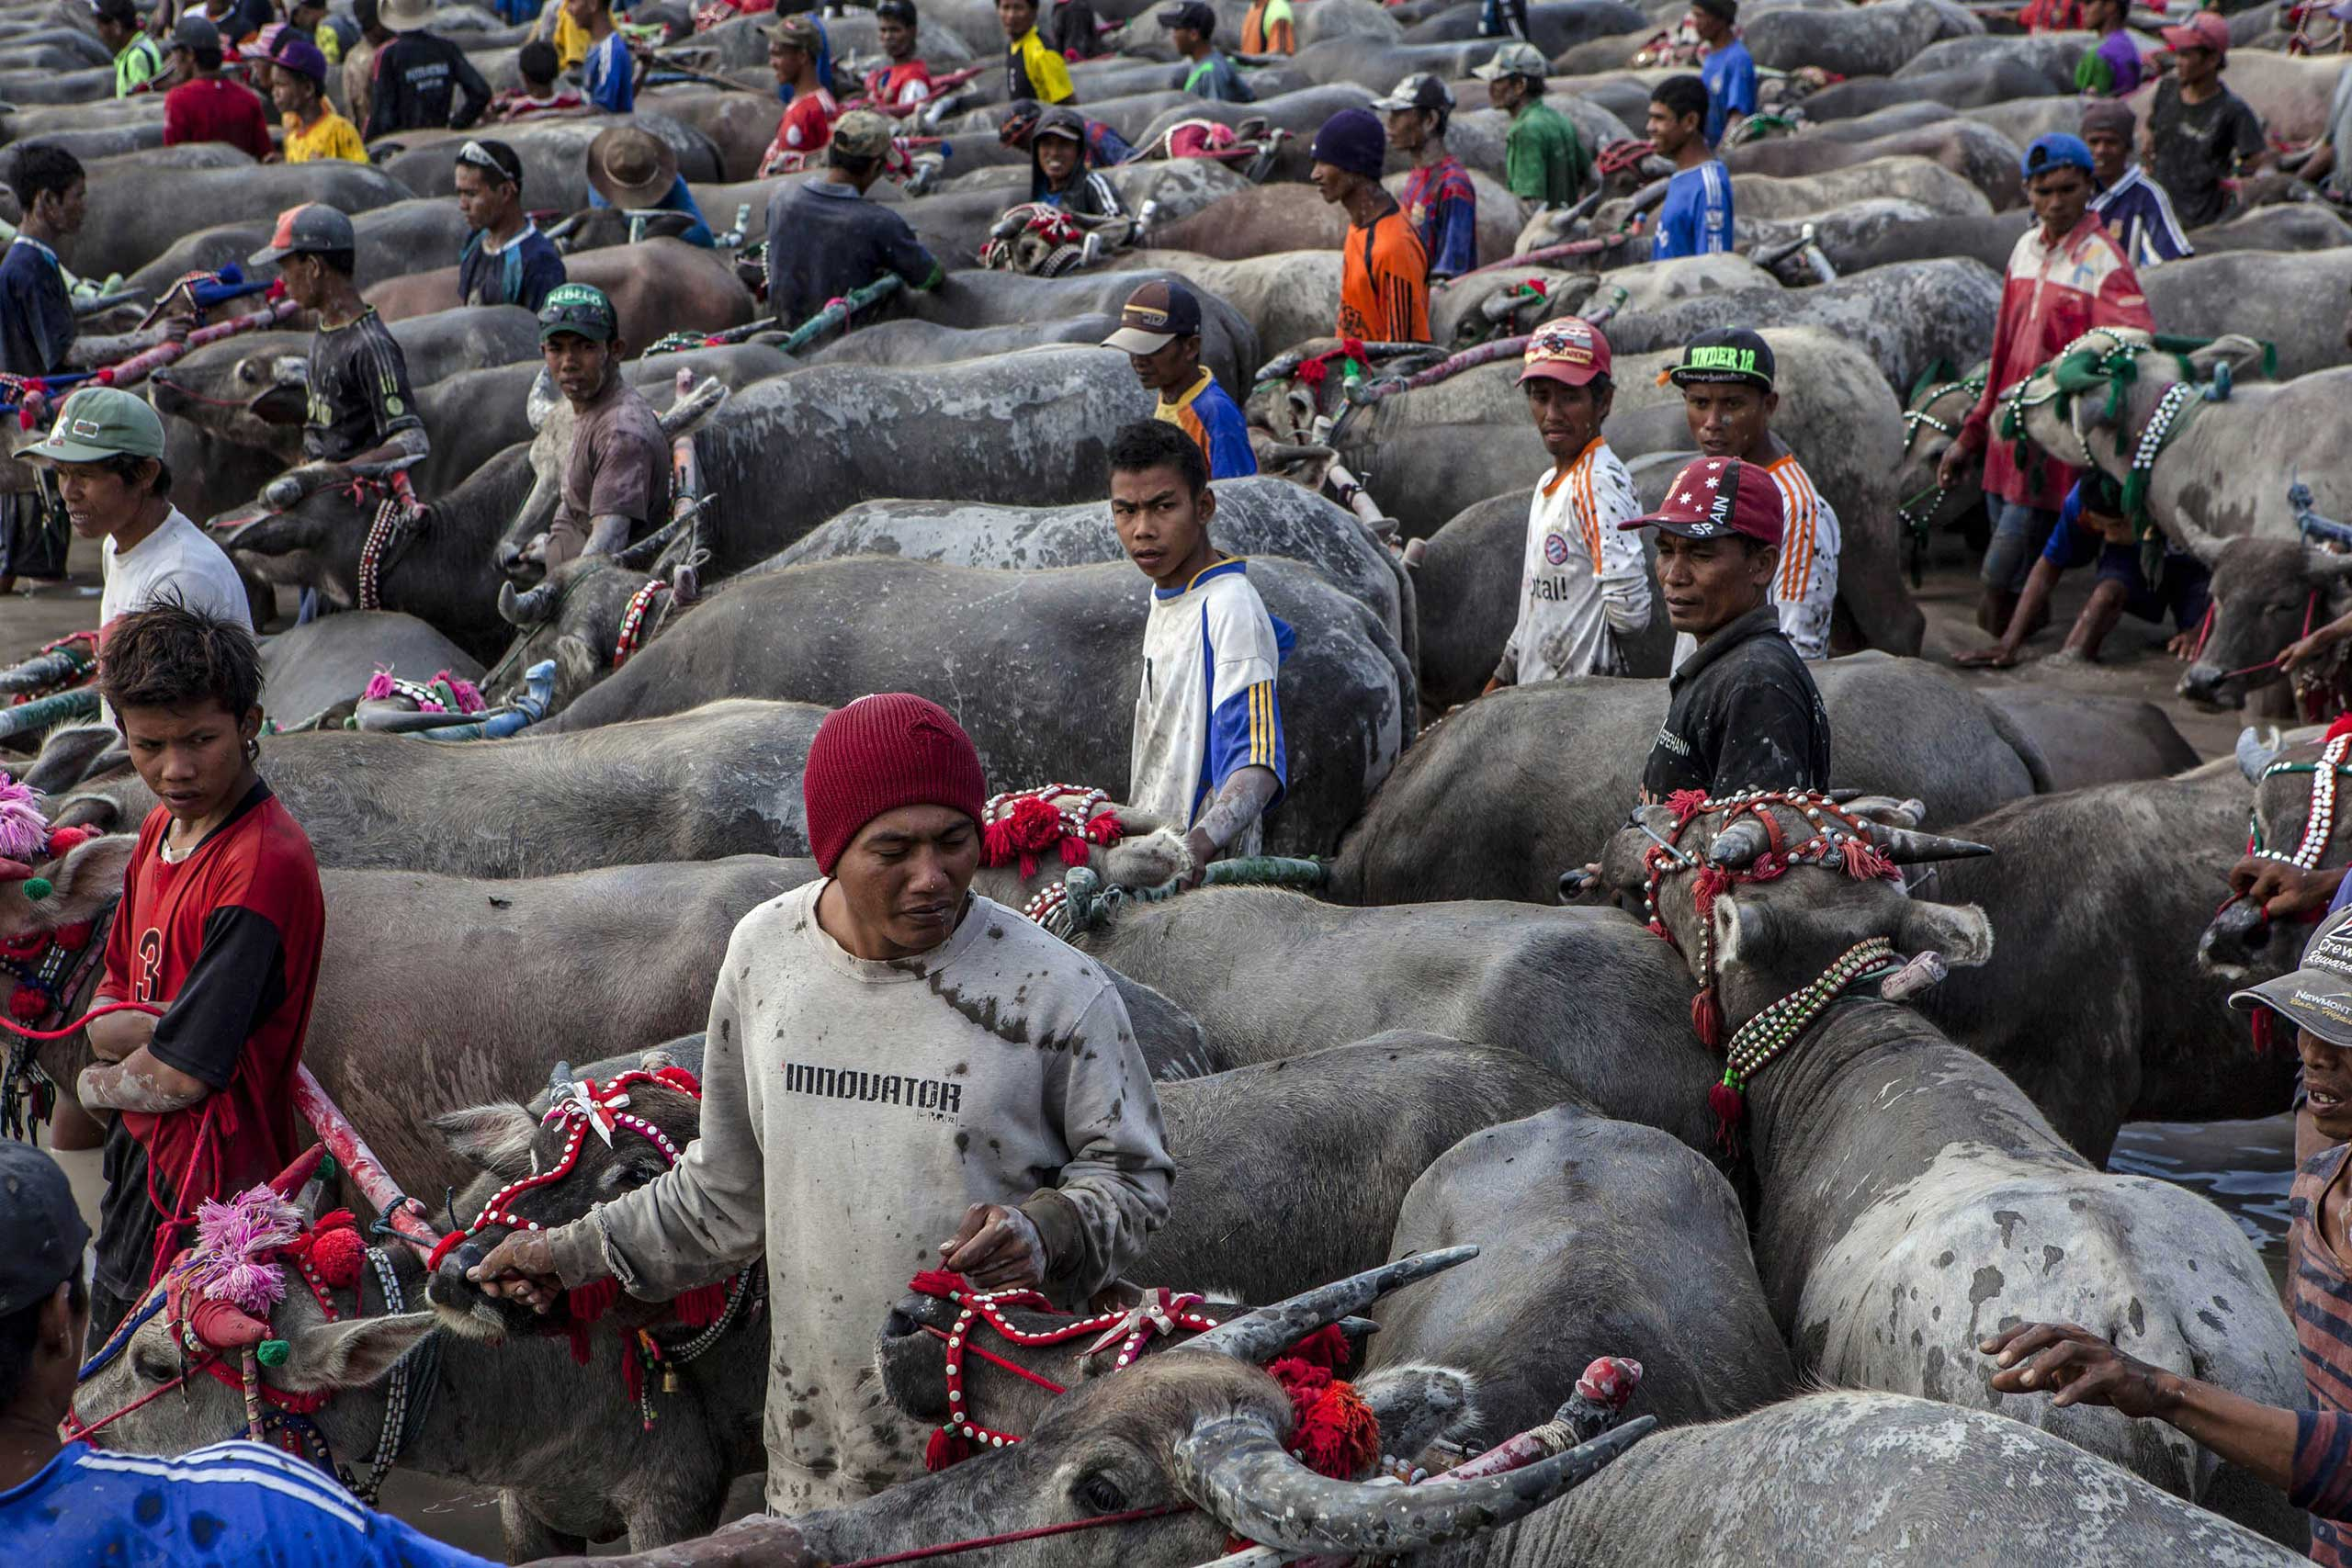 Sept. 30, 2014. Barapan Kebo participants gather in rice fields before the race during Barapan Kebo or buffalo races as part of the Moyo festival in Sumbawa Island, West Nusa Tenggara, Indonesia.